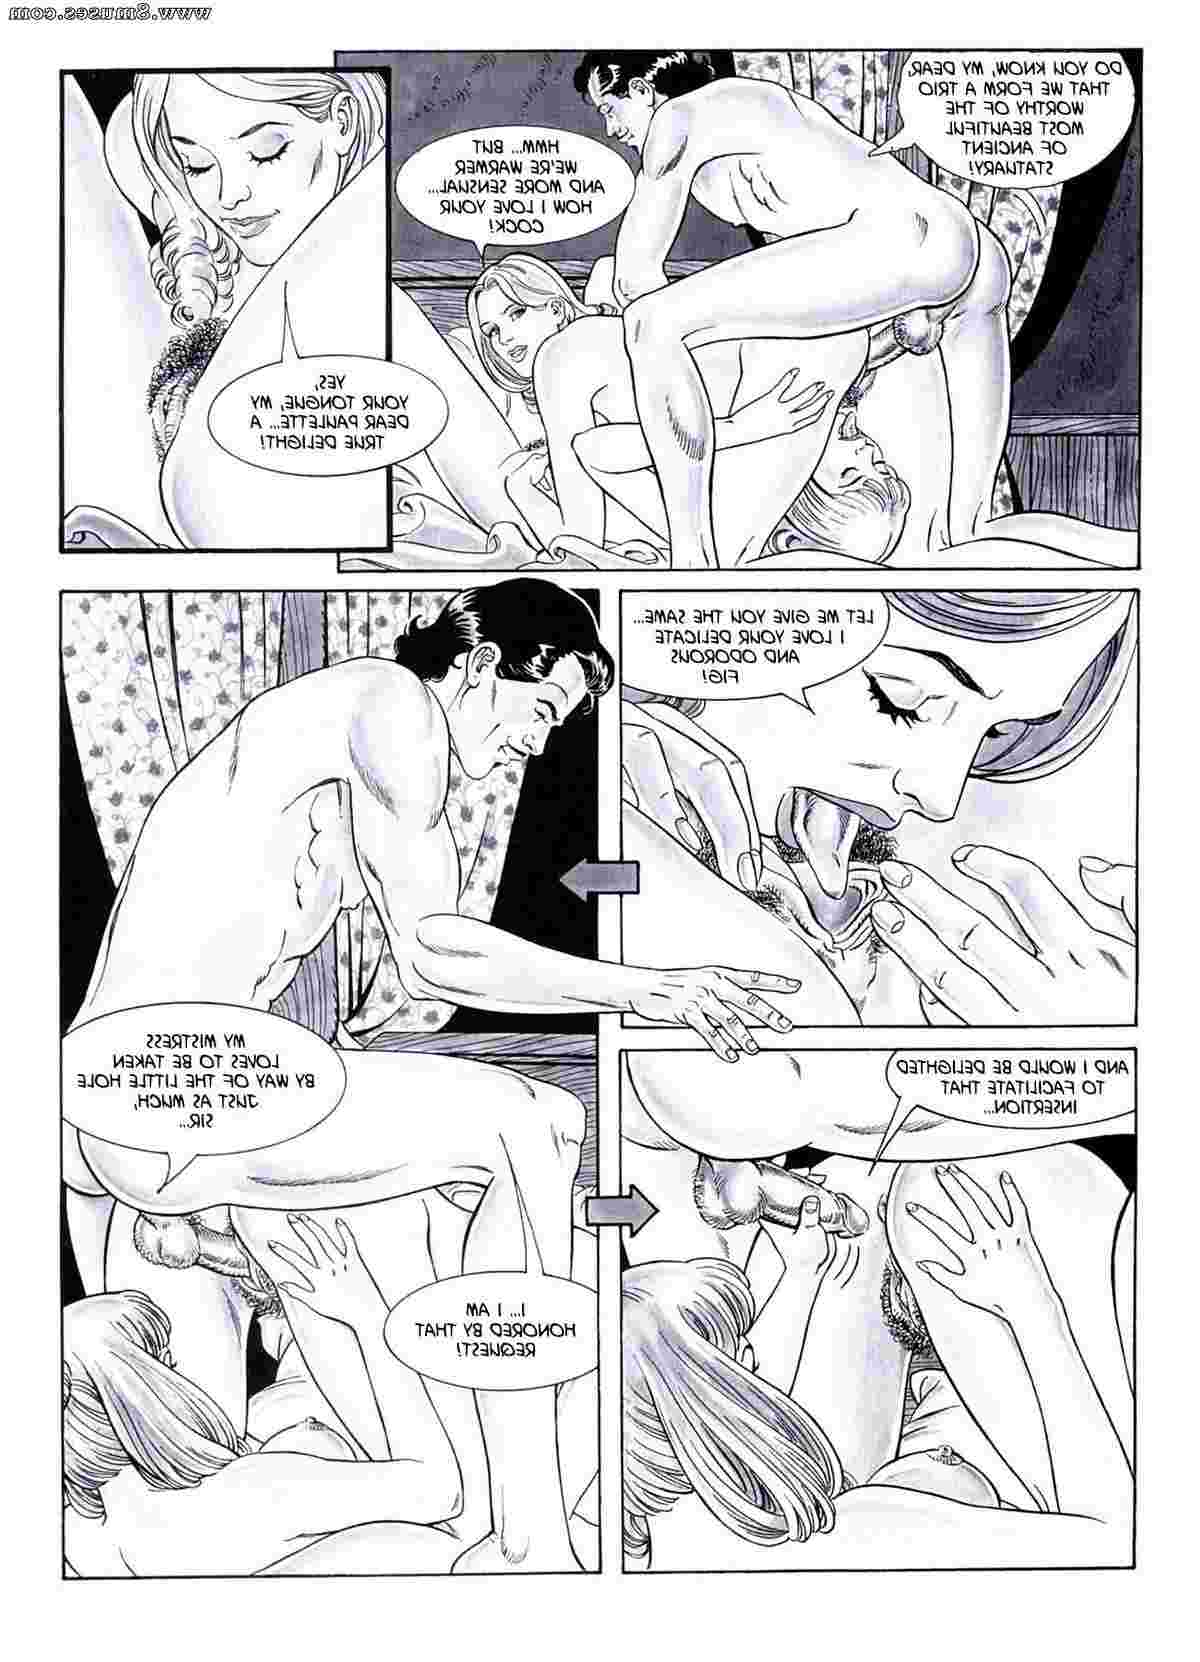 Stramaglia-Morale-Comics/Impetuous-Amber Impetuous_Amber__8muses_-_Sex_and_Porn_Comics_14.jpg